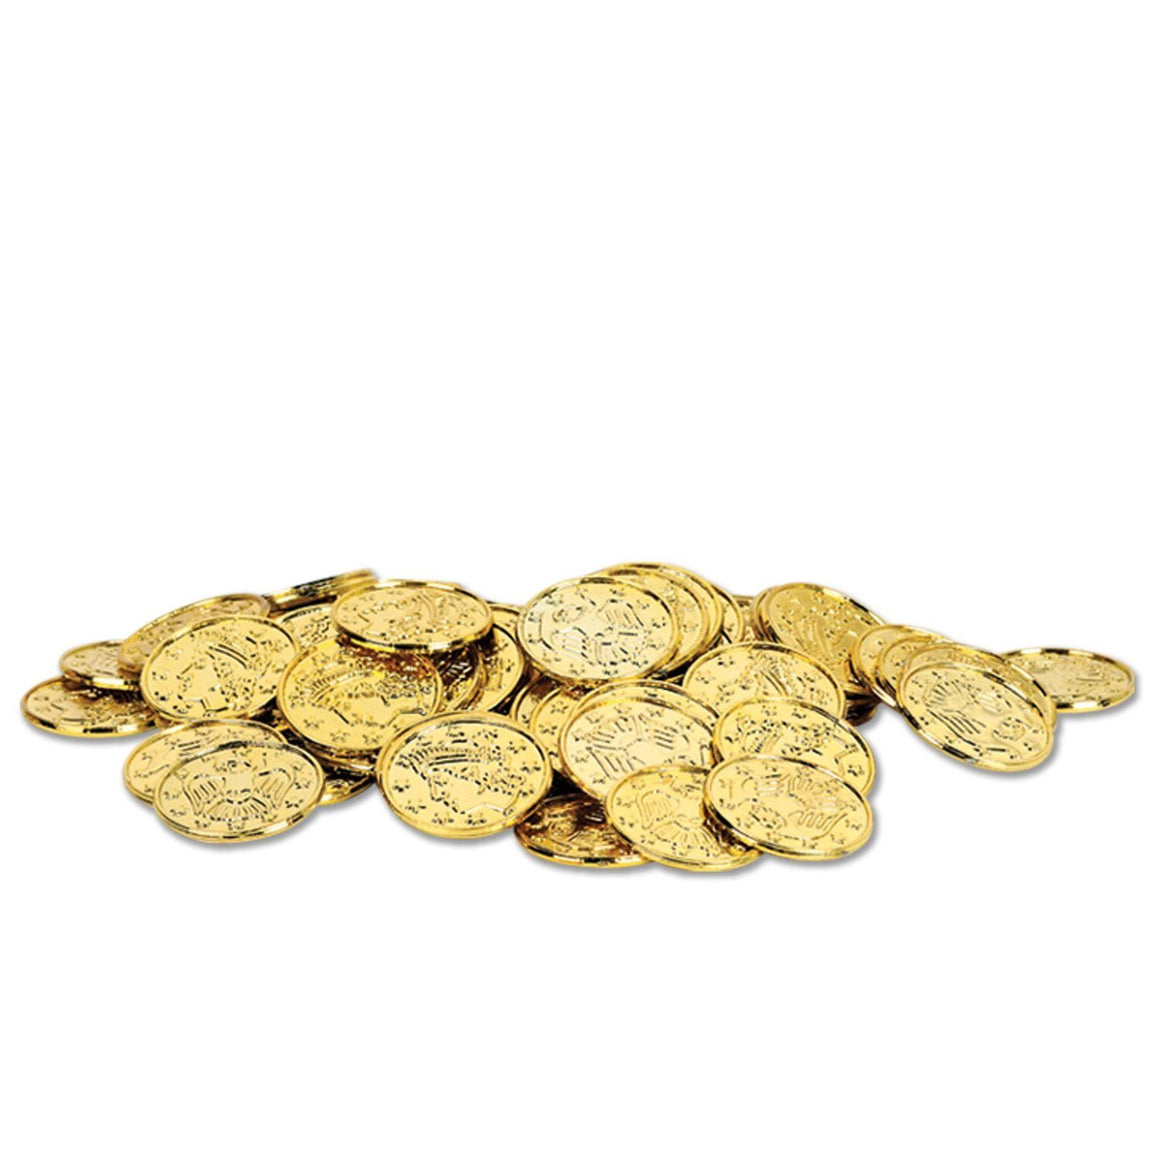 EXTRAS - GOLD COINS